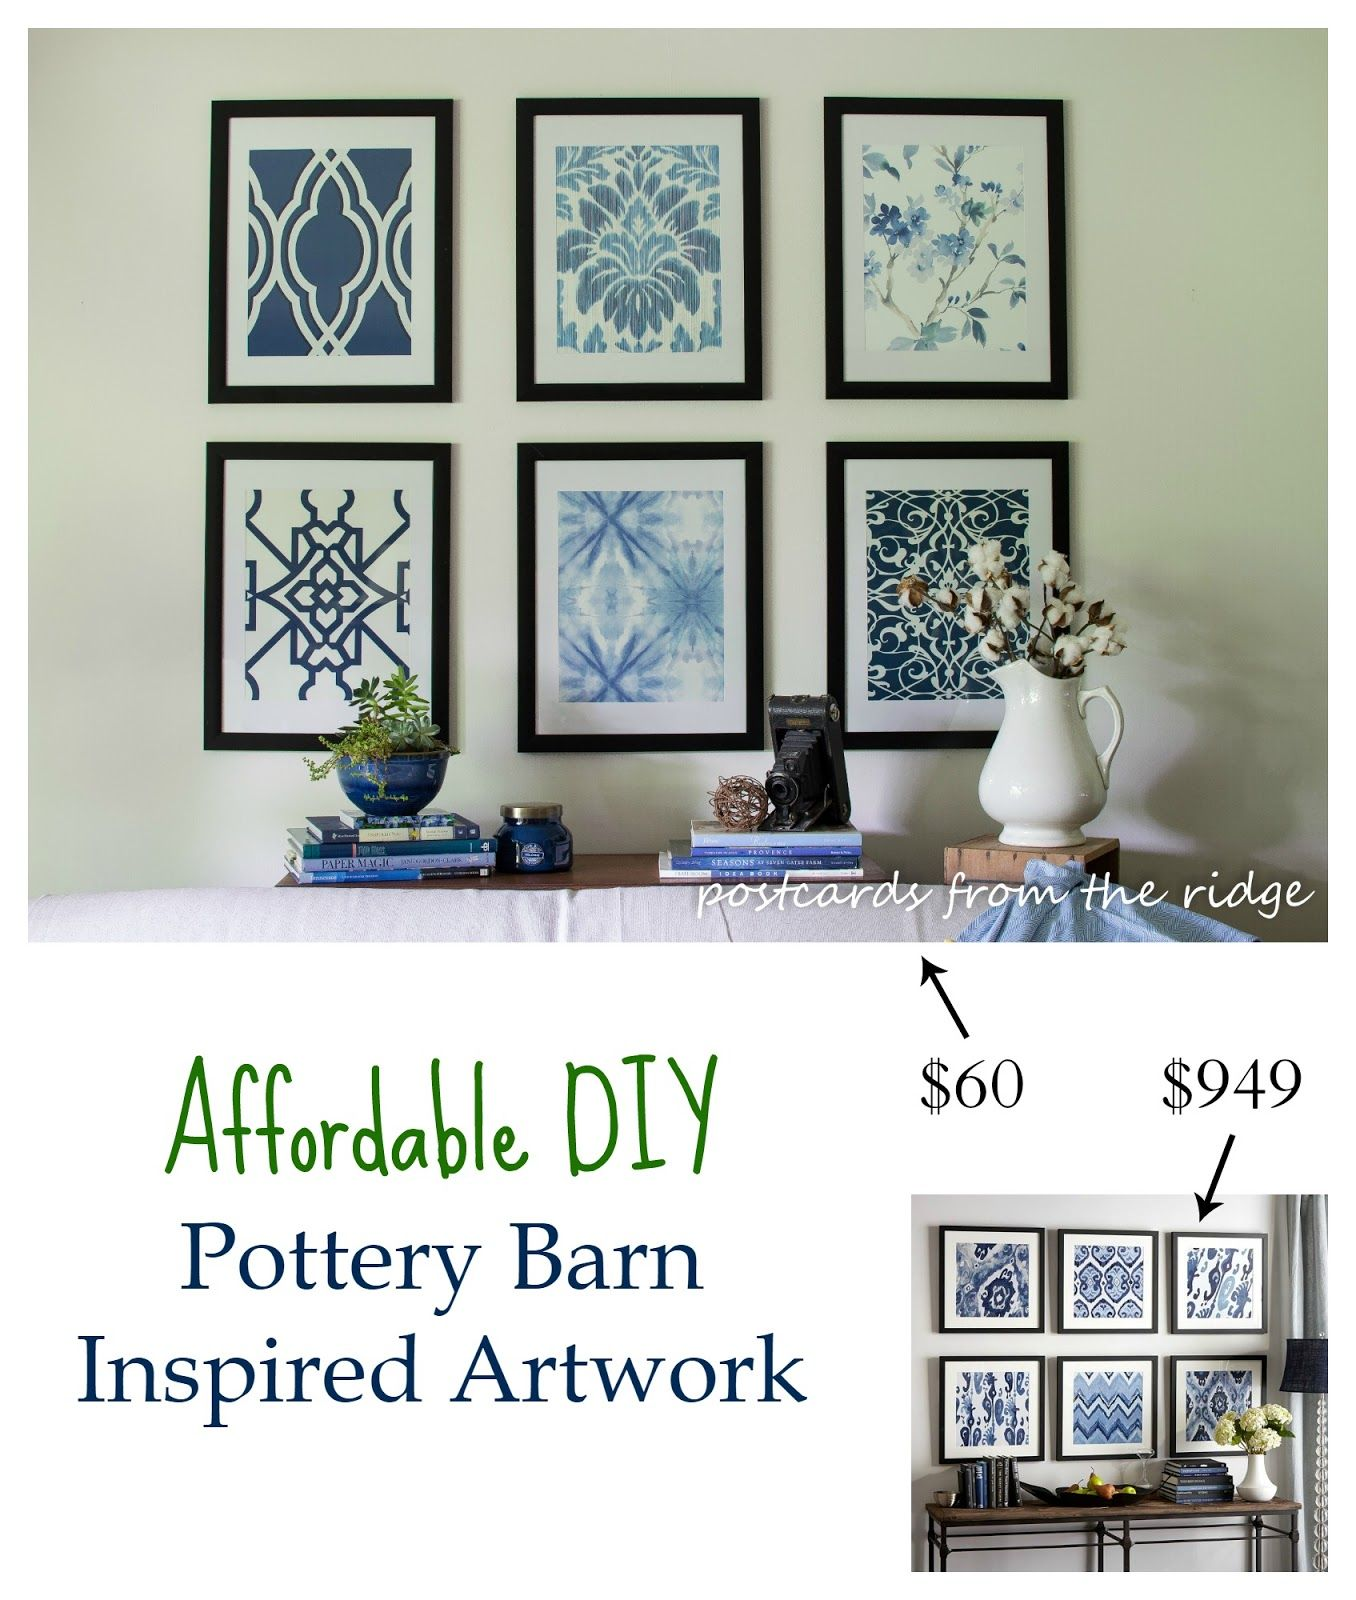 Bedrooms Pottery Barn Inspired: Affordable DIY Artwork Inspired By Pottery Barn